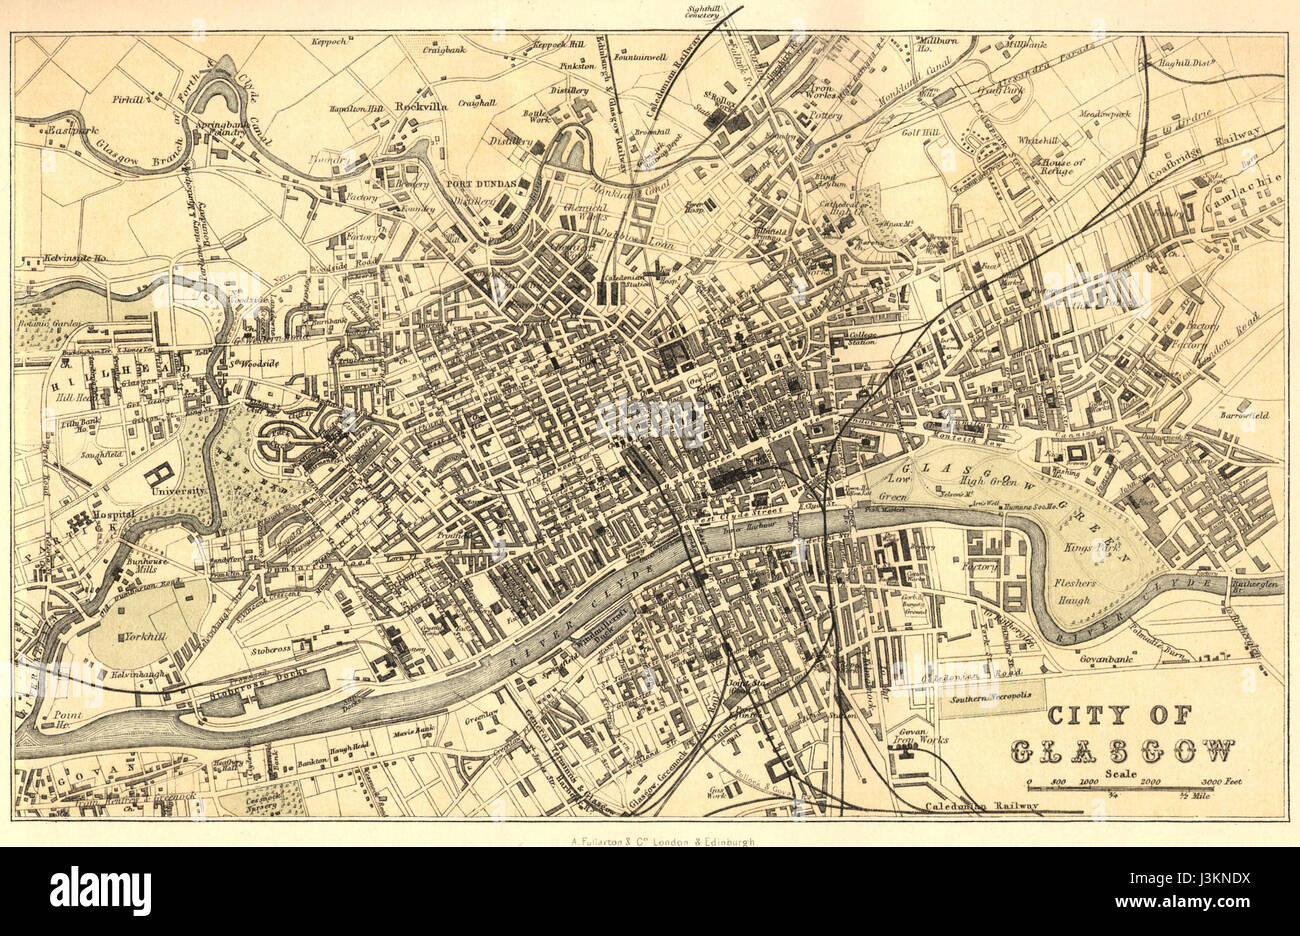 Edinburgh Glasgow town plans SCOTLAND HARMSWORTH 1920 old vintage map chart